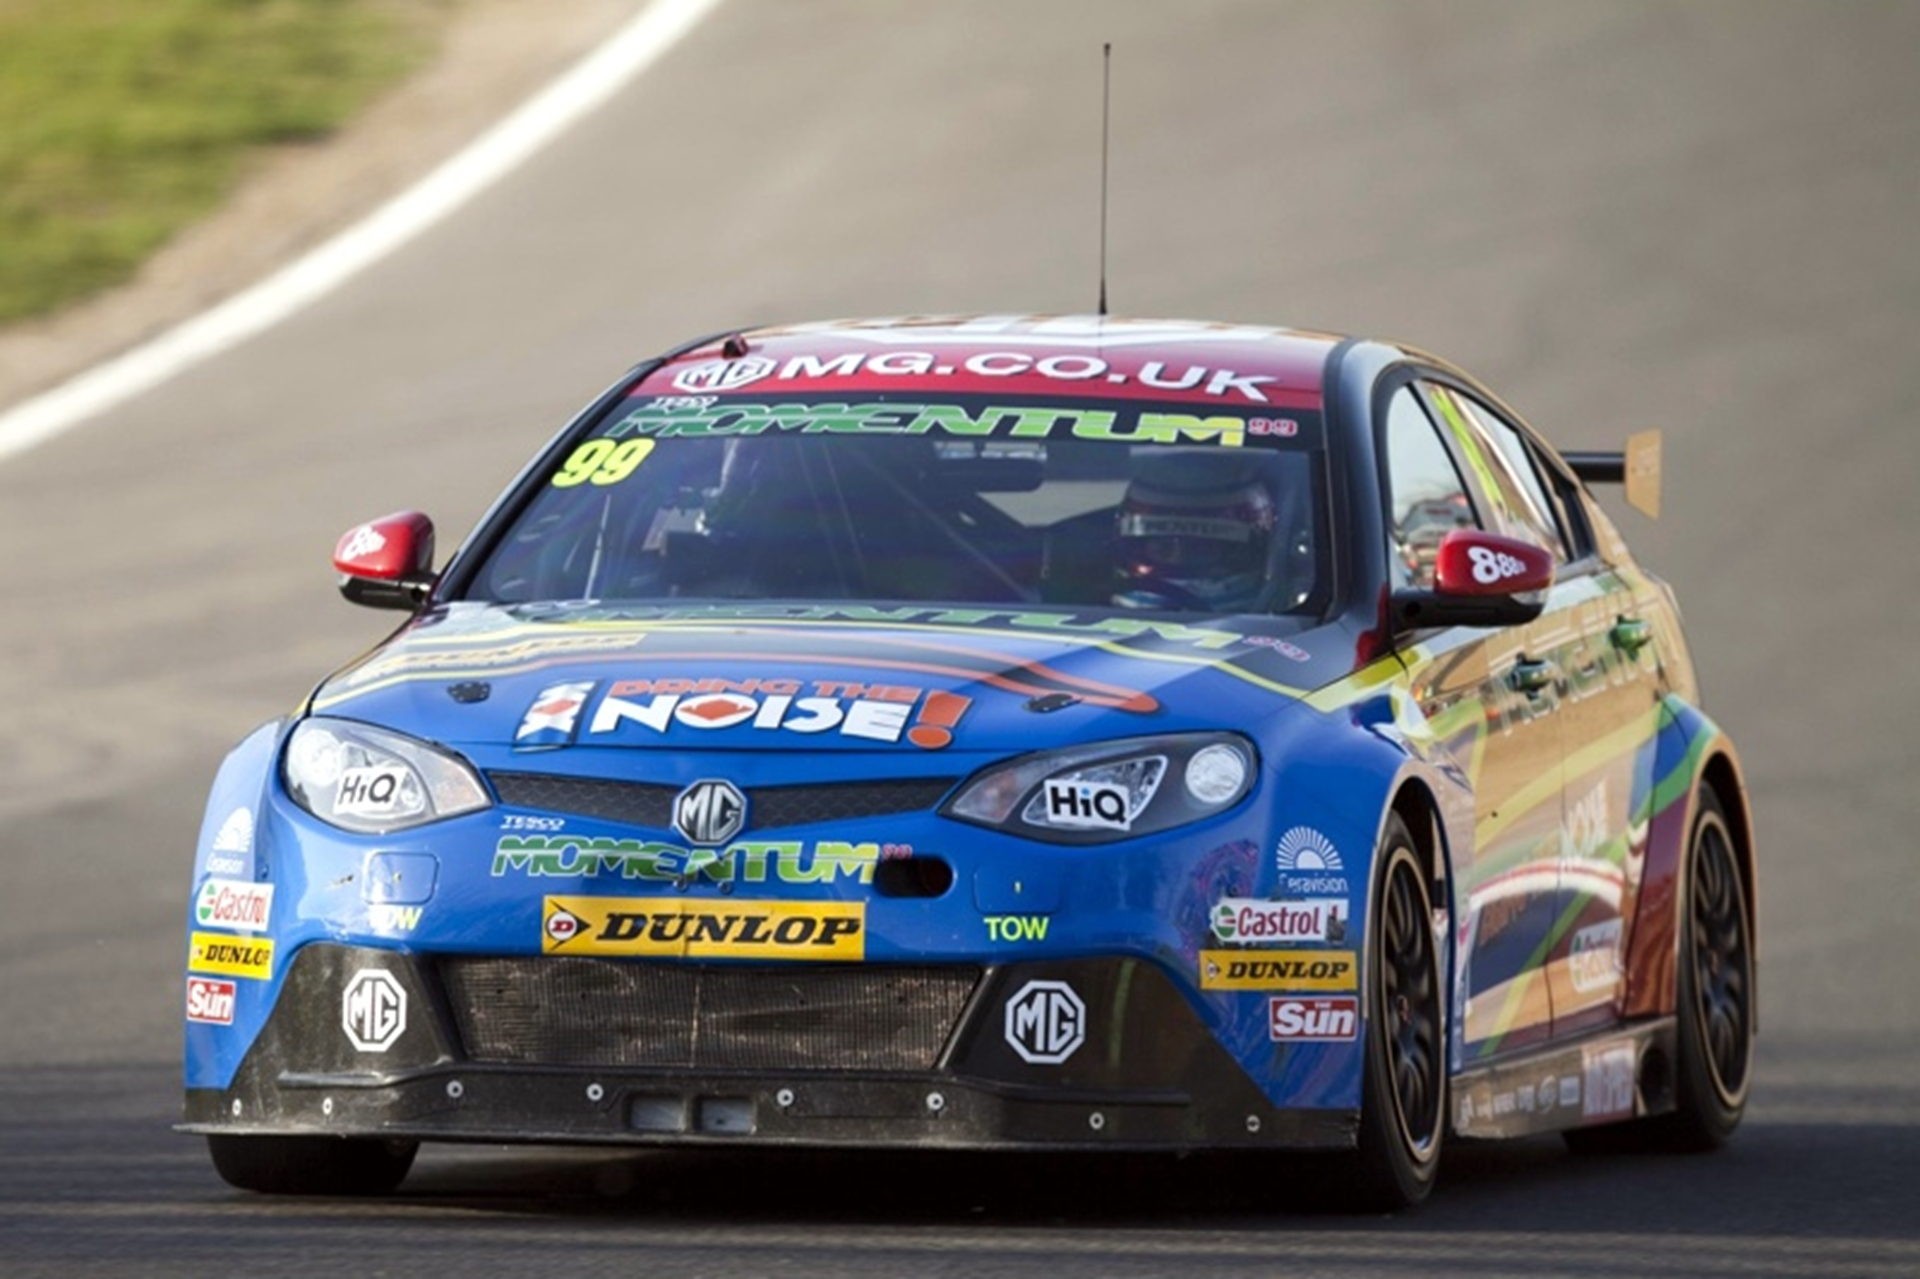 NGTC spec MG-6 in action